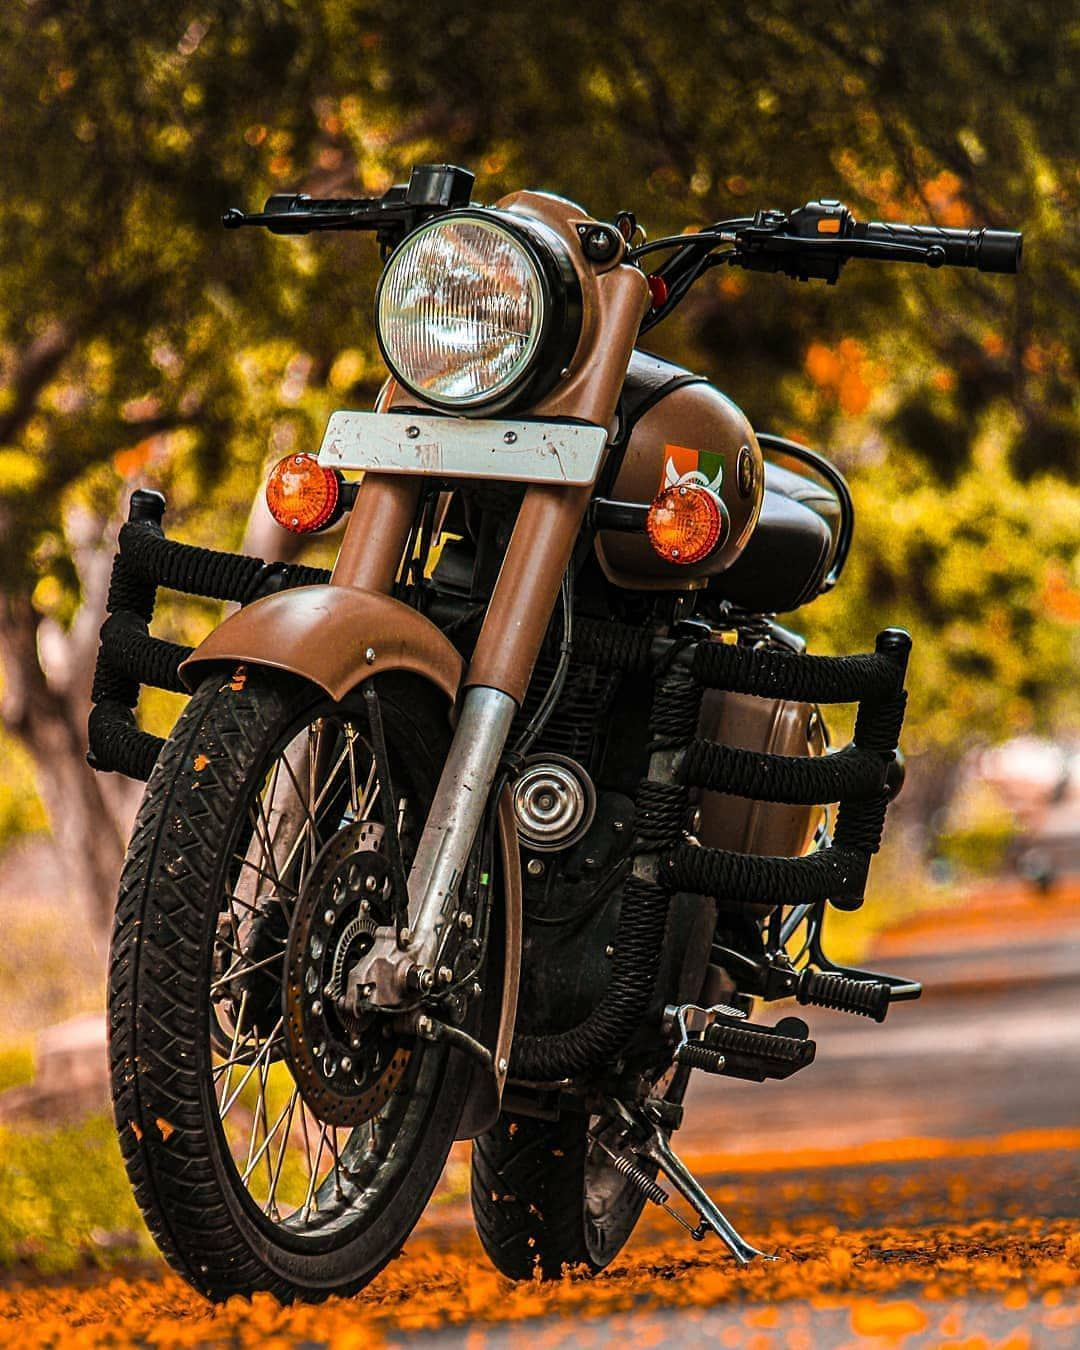 Royal Enfield Royalenfield Bullet Bulletclub Royalenfieldindia Royalenfield Bullet Bike Royal Enfield Royal Enfield Bullet Royal Enfield Classic 350cc